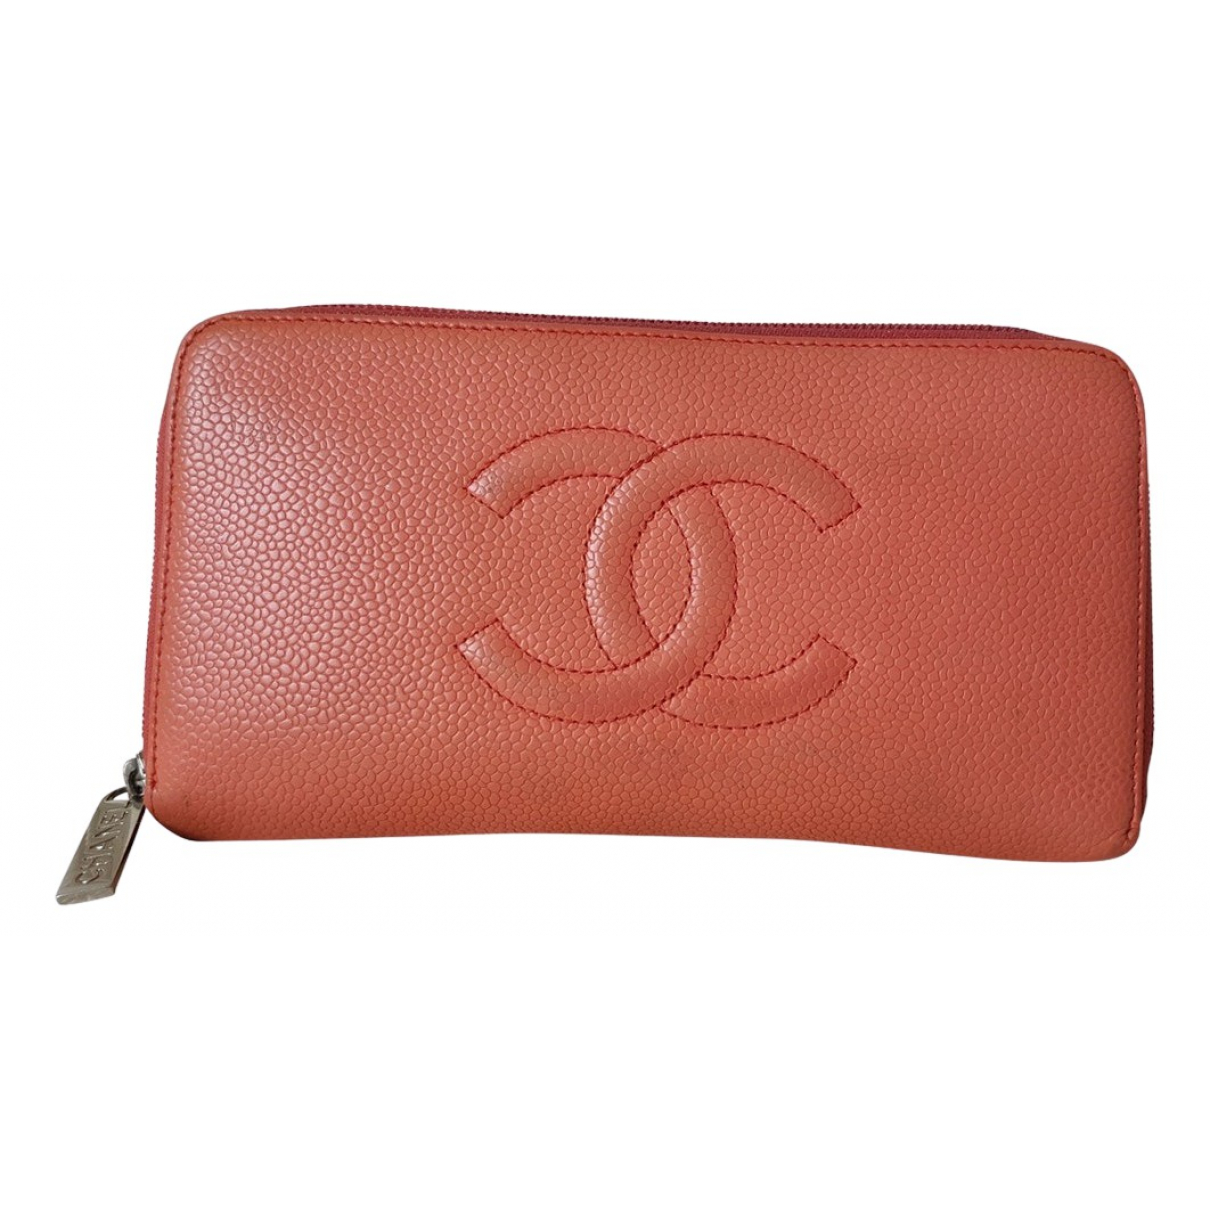 Chanel \N Portemonnaie in  Orange Leder